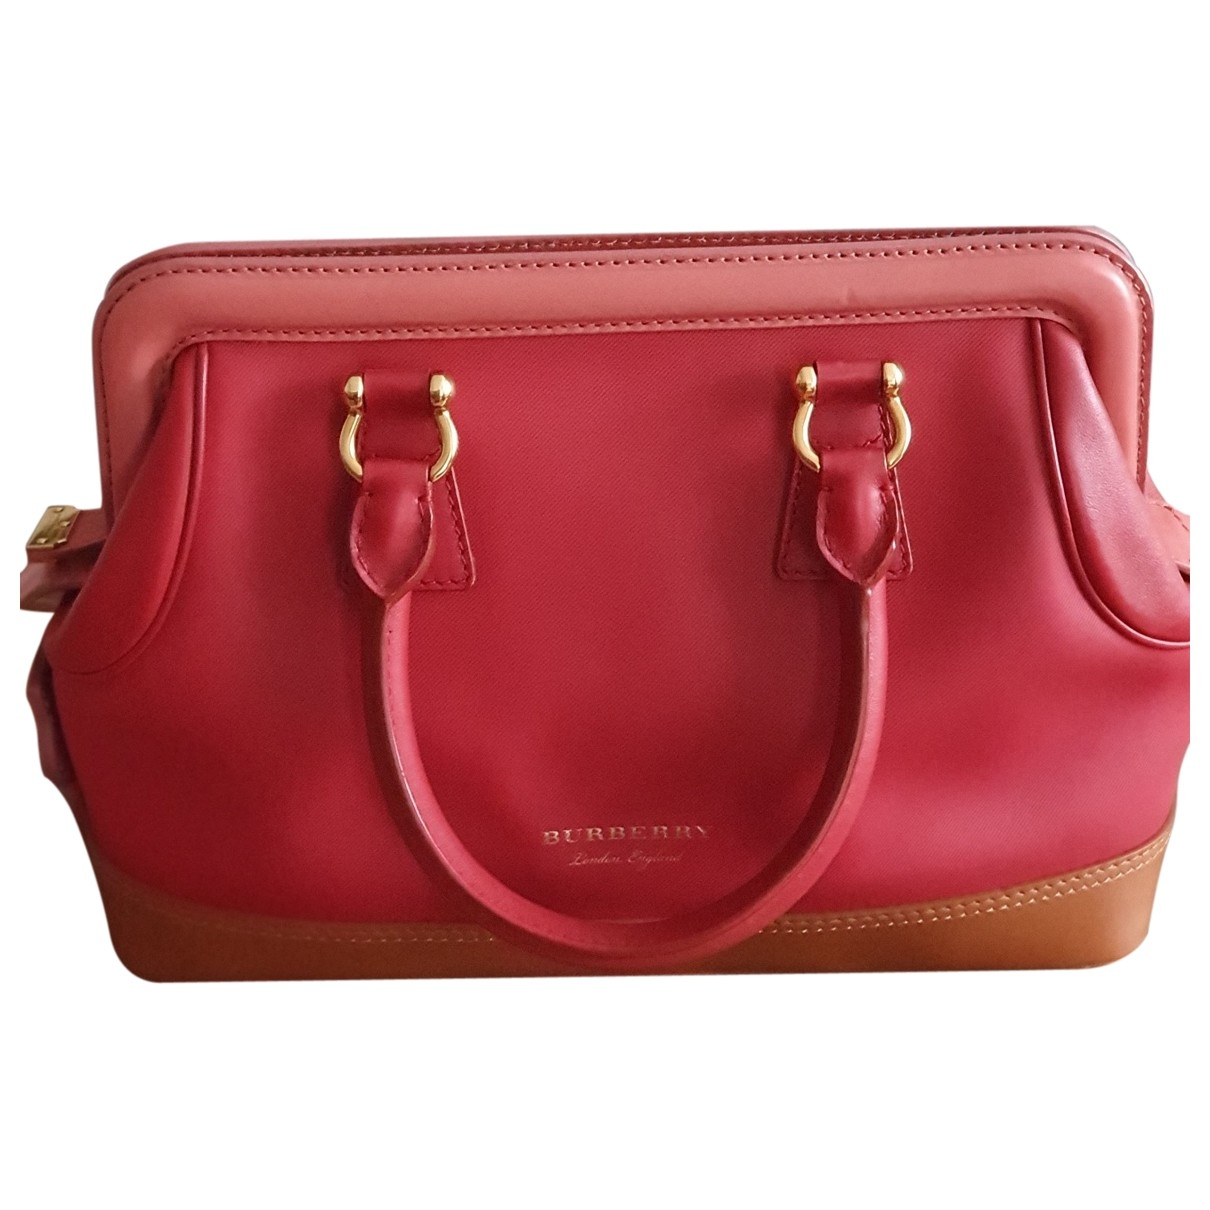 Burberry \N Red Leather handbag for Women \N